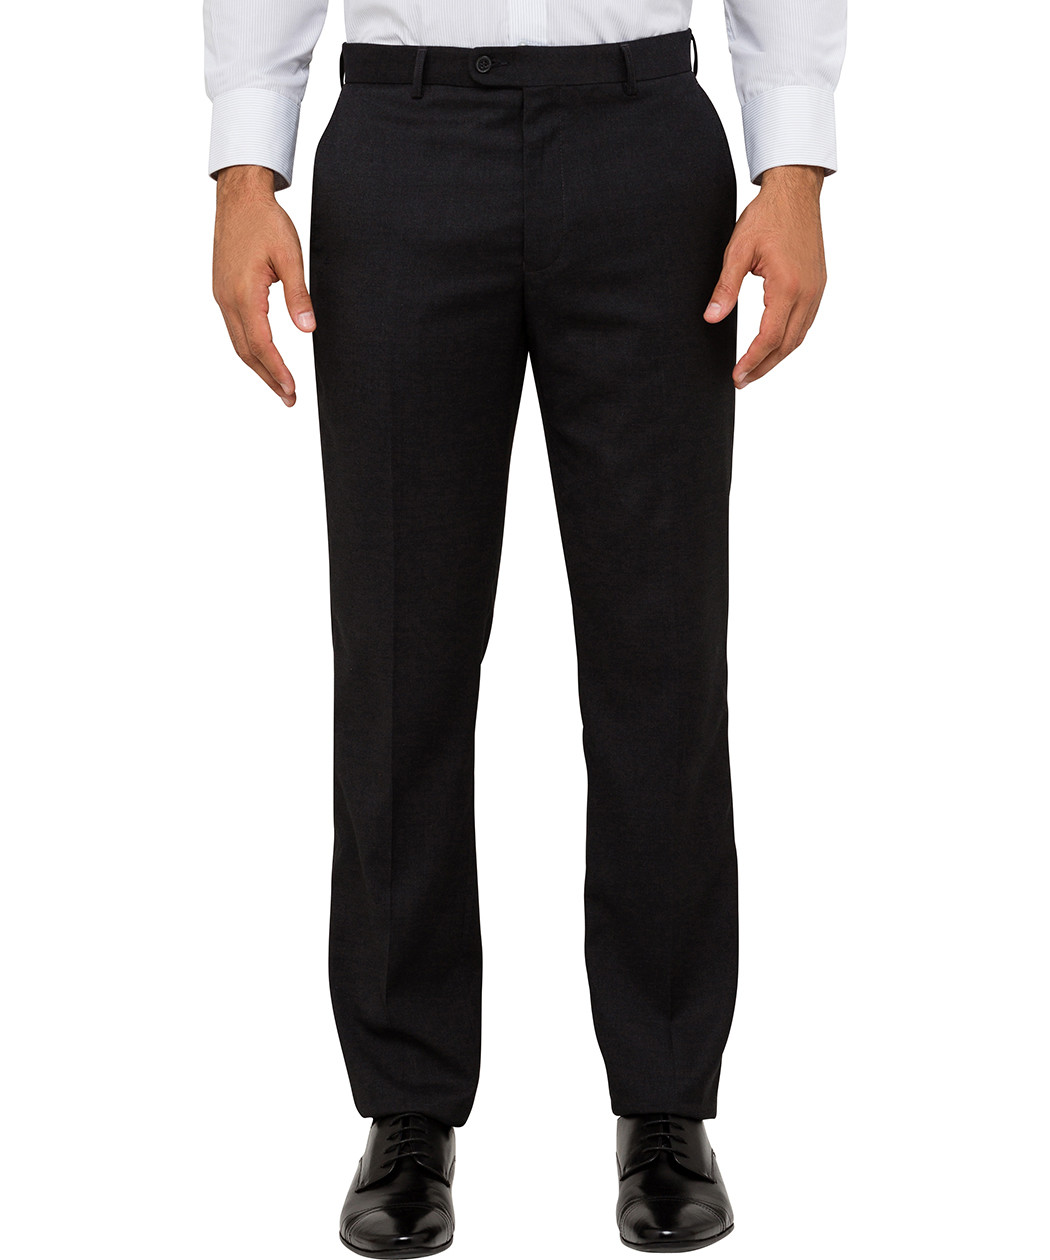 Van Heusen Trousers Mens Business Pants Tendencies Navy Chinos Short 32 Slim Fit Trouser